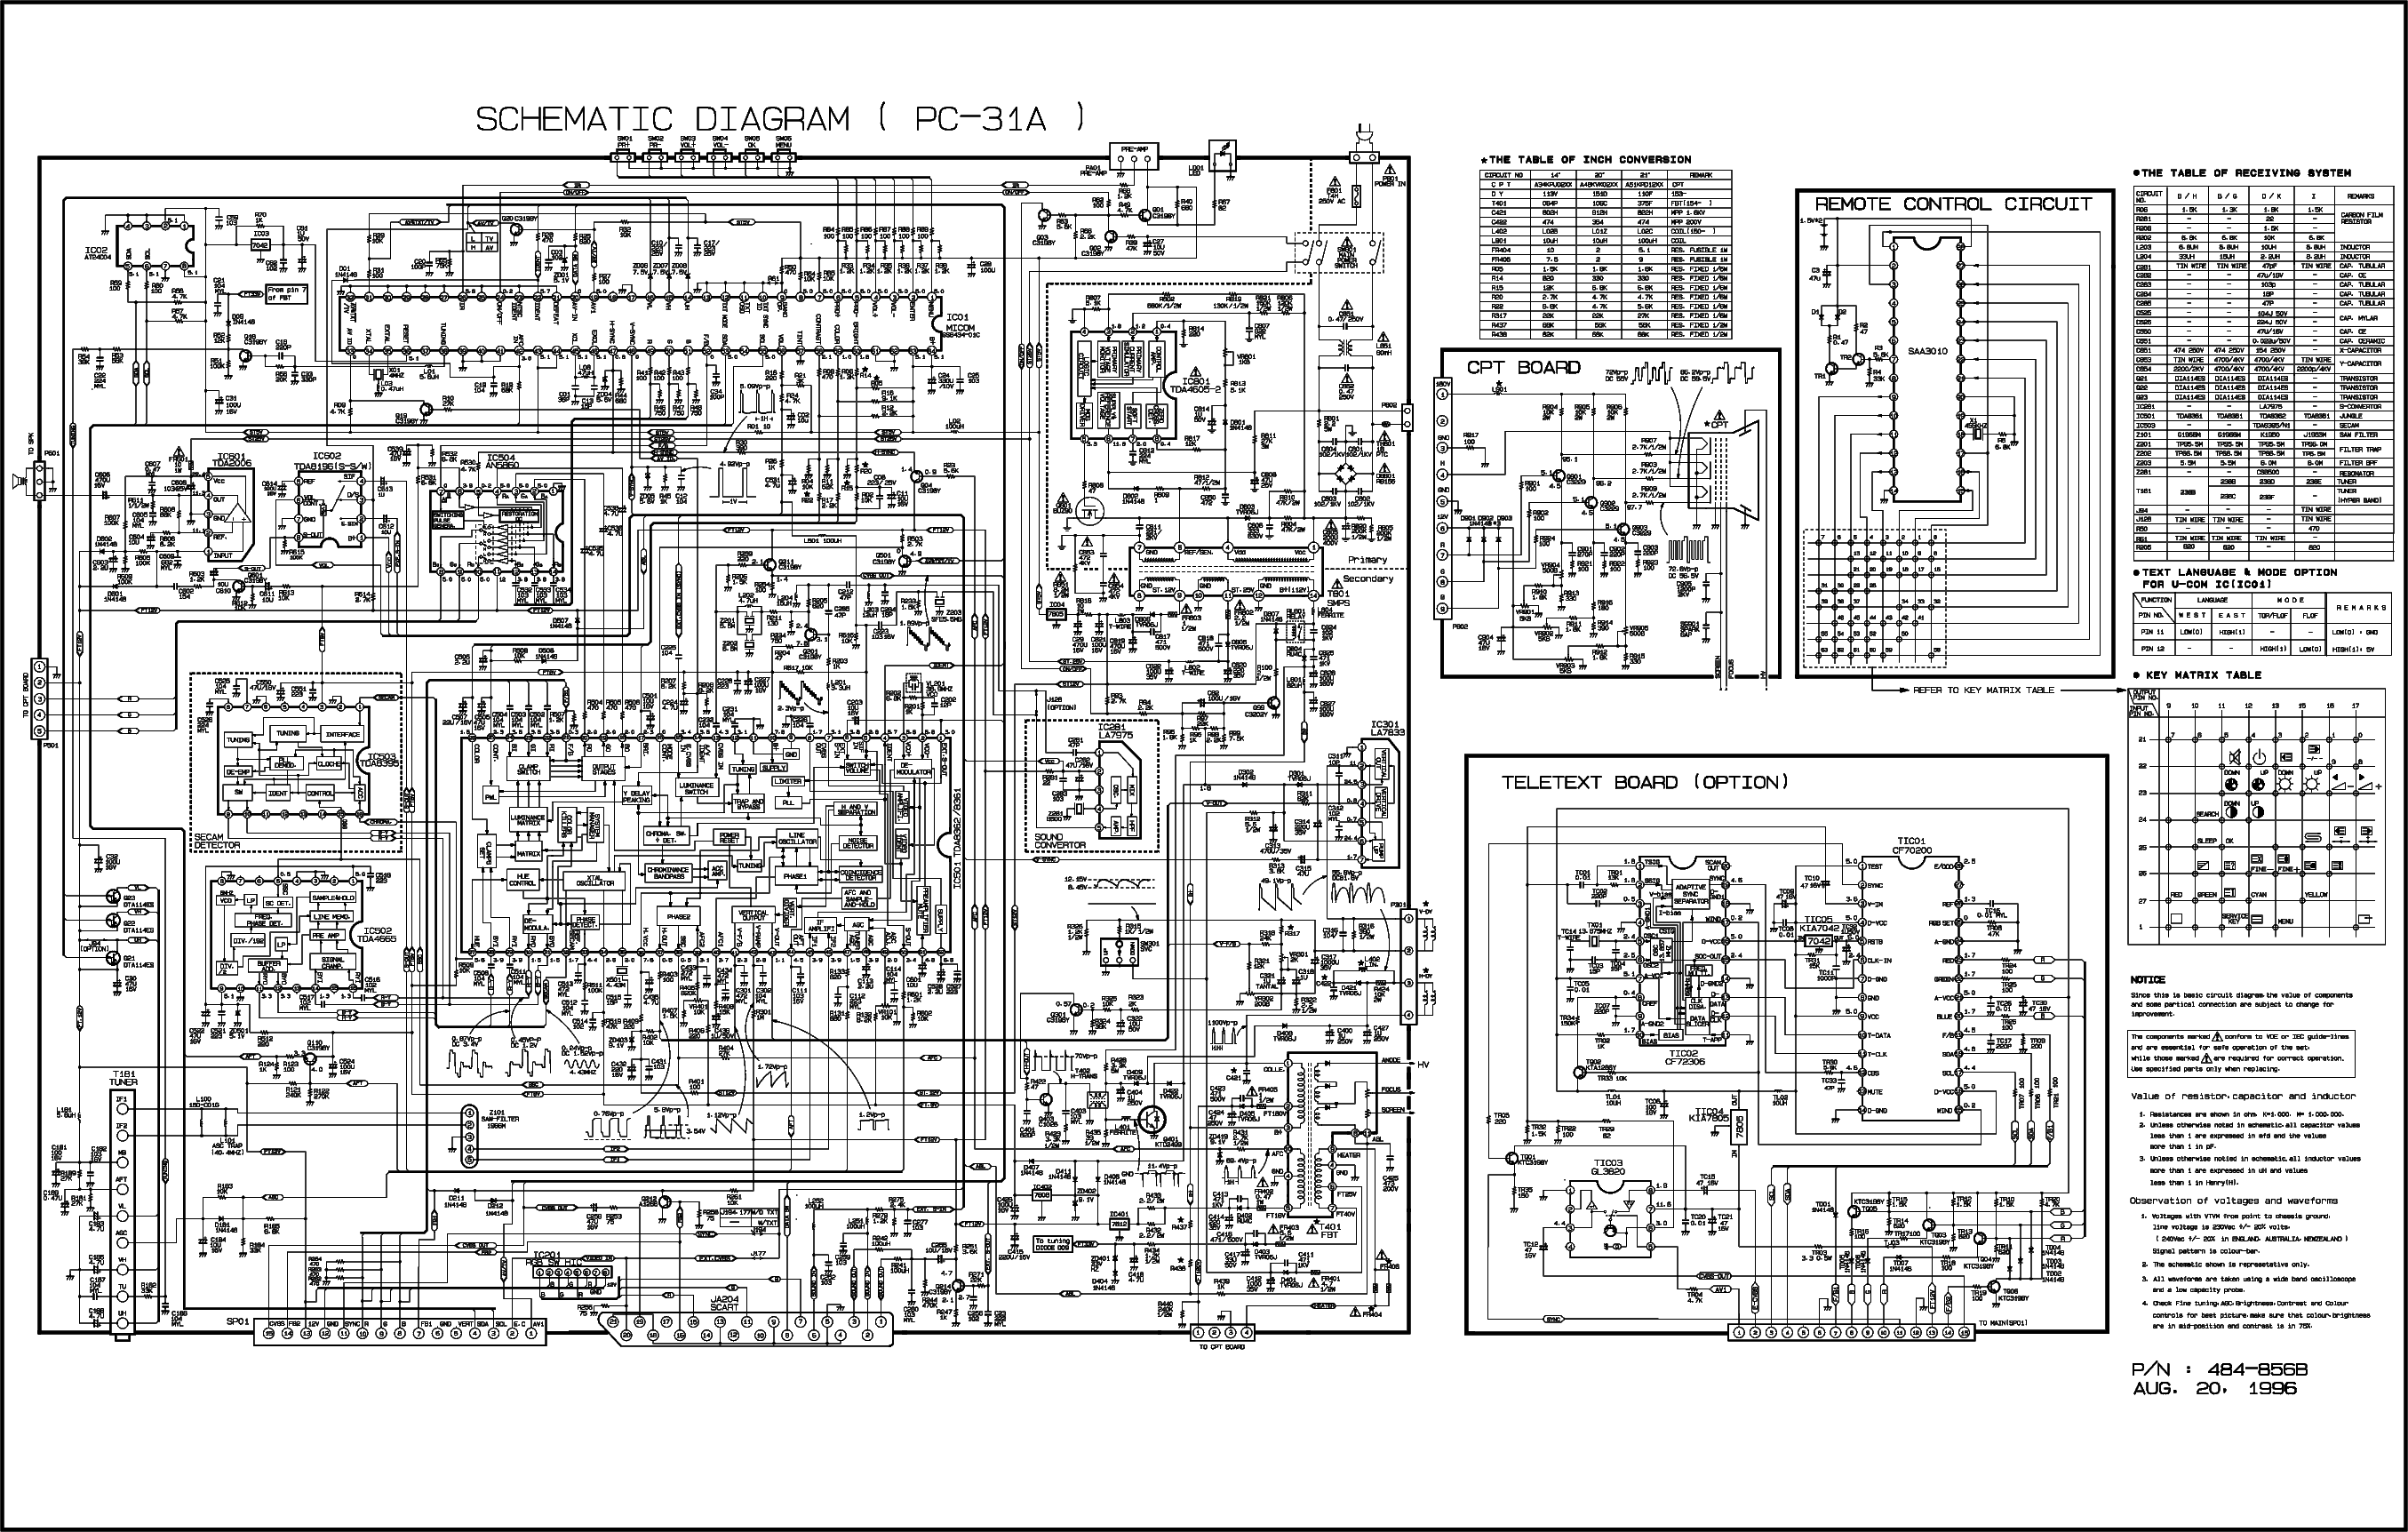 lg chassis pc31a service manual download  schematics